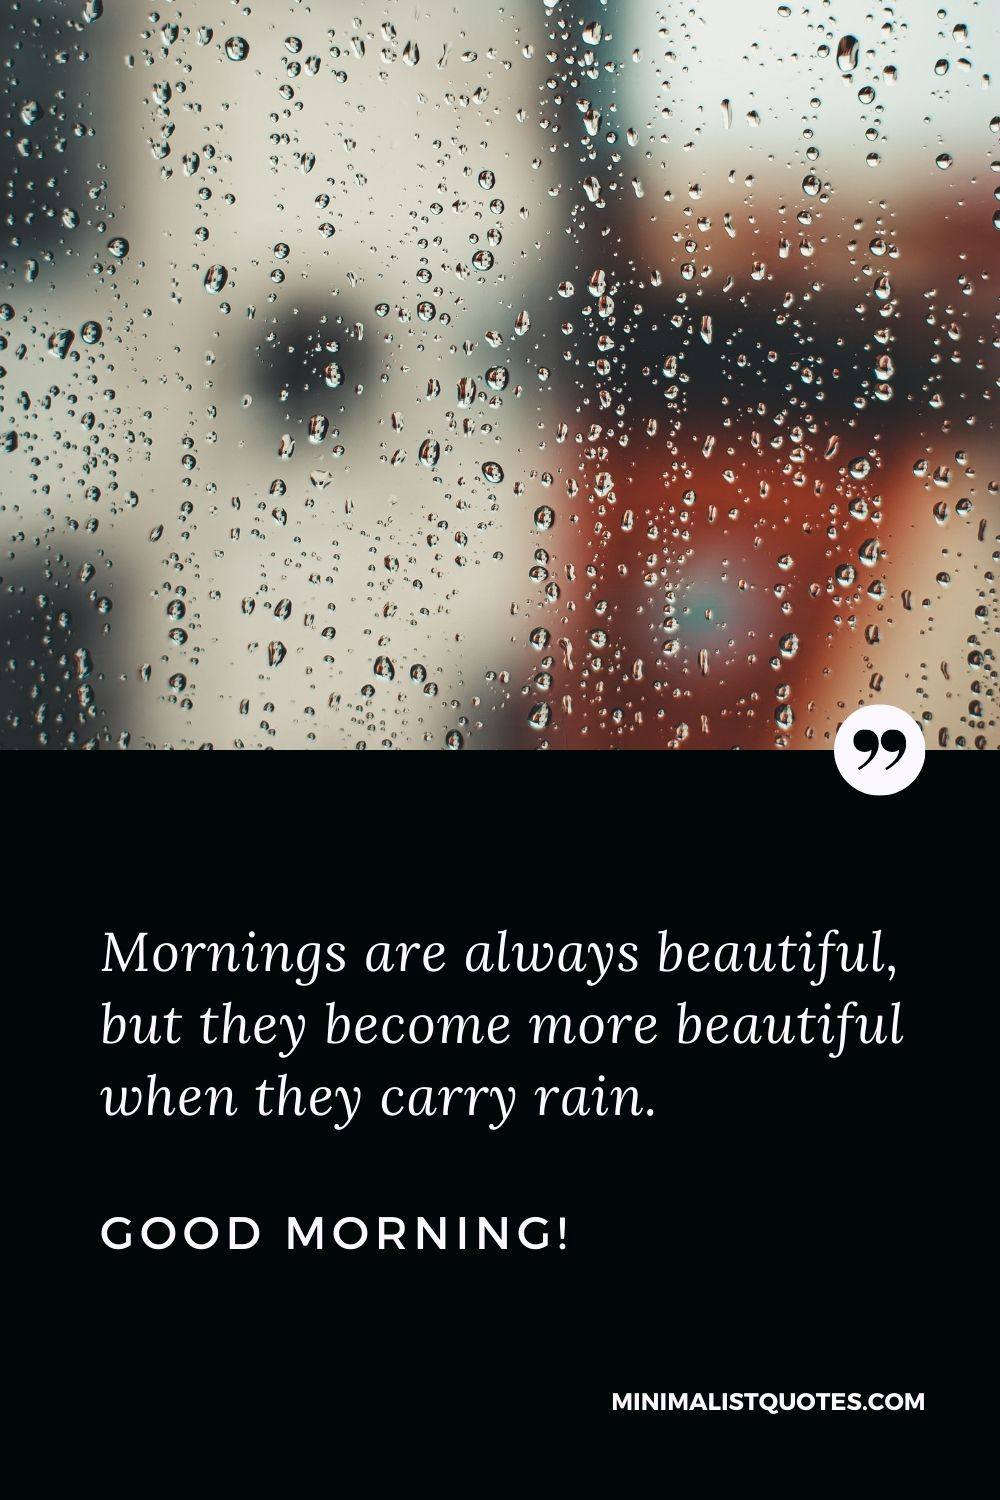 Good morning rainy day Quote: Mornings are always beautiful, but they become more beautiful when they carry rain. Good Morning!